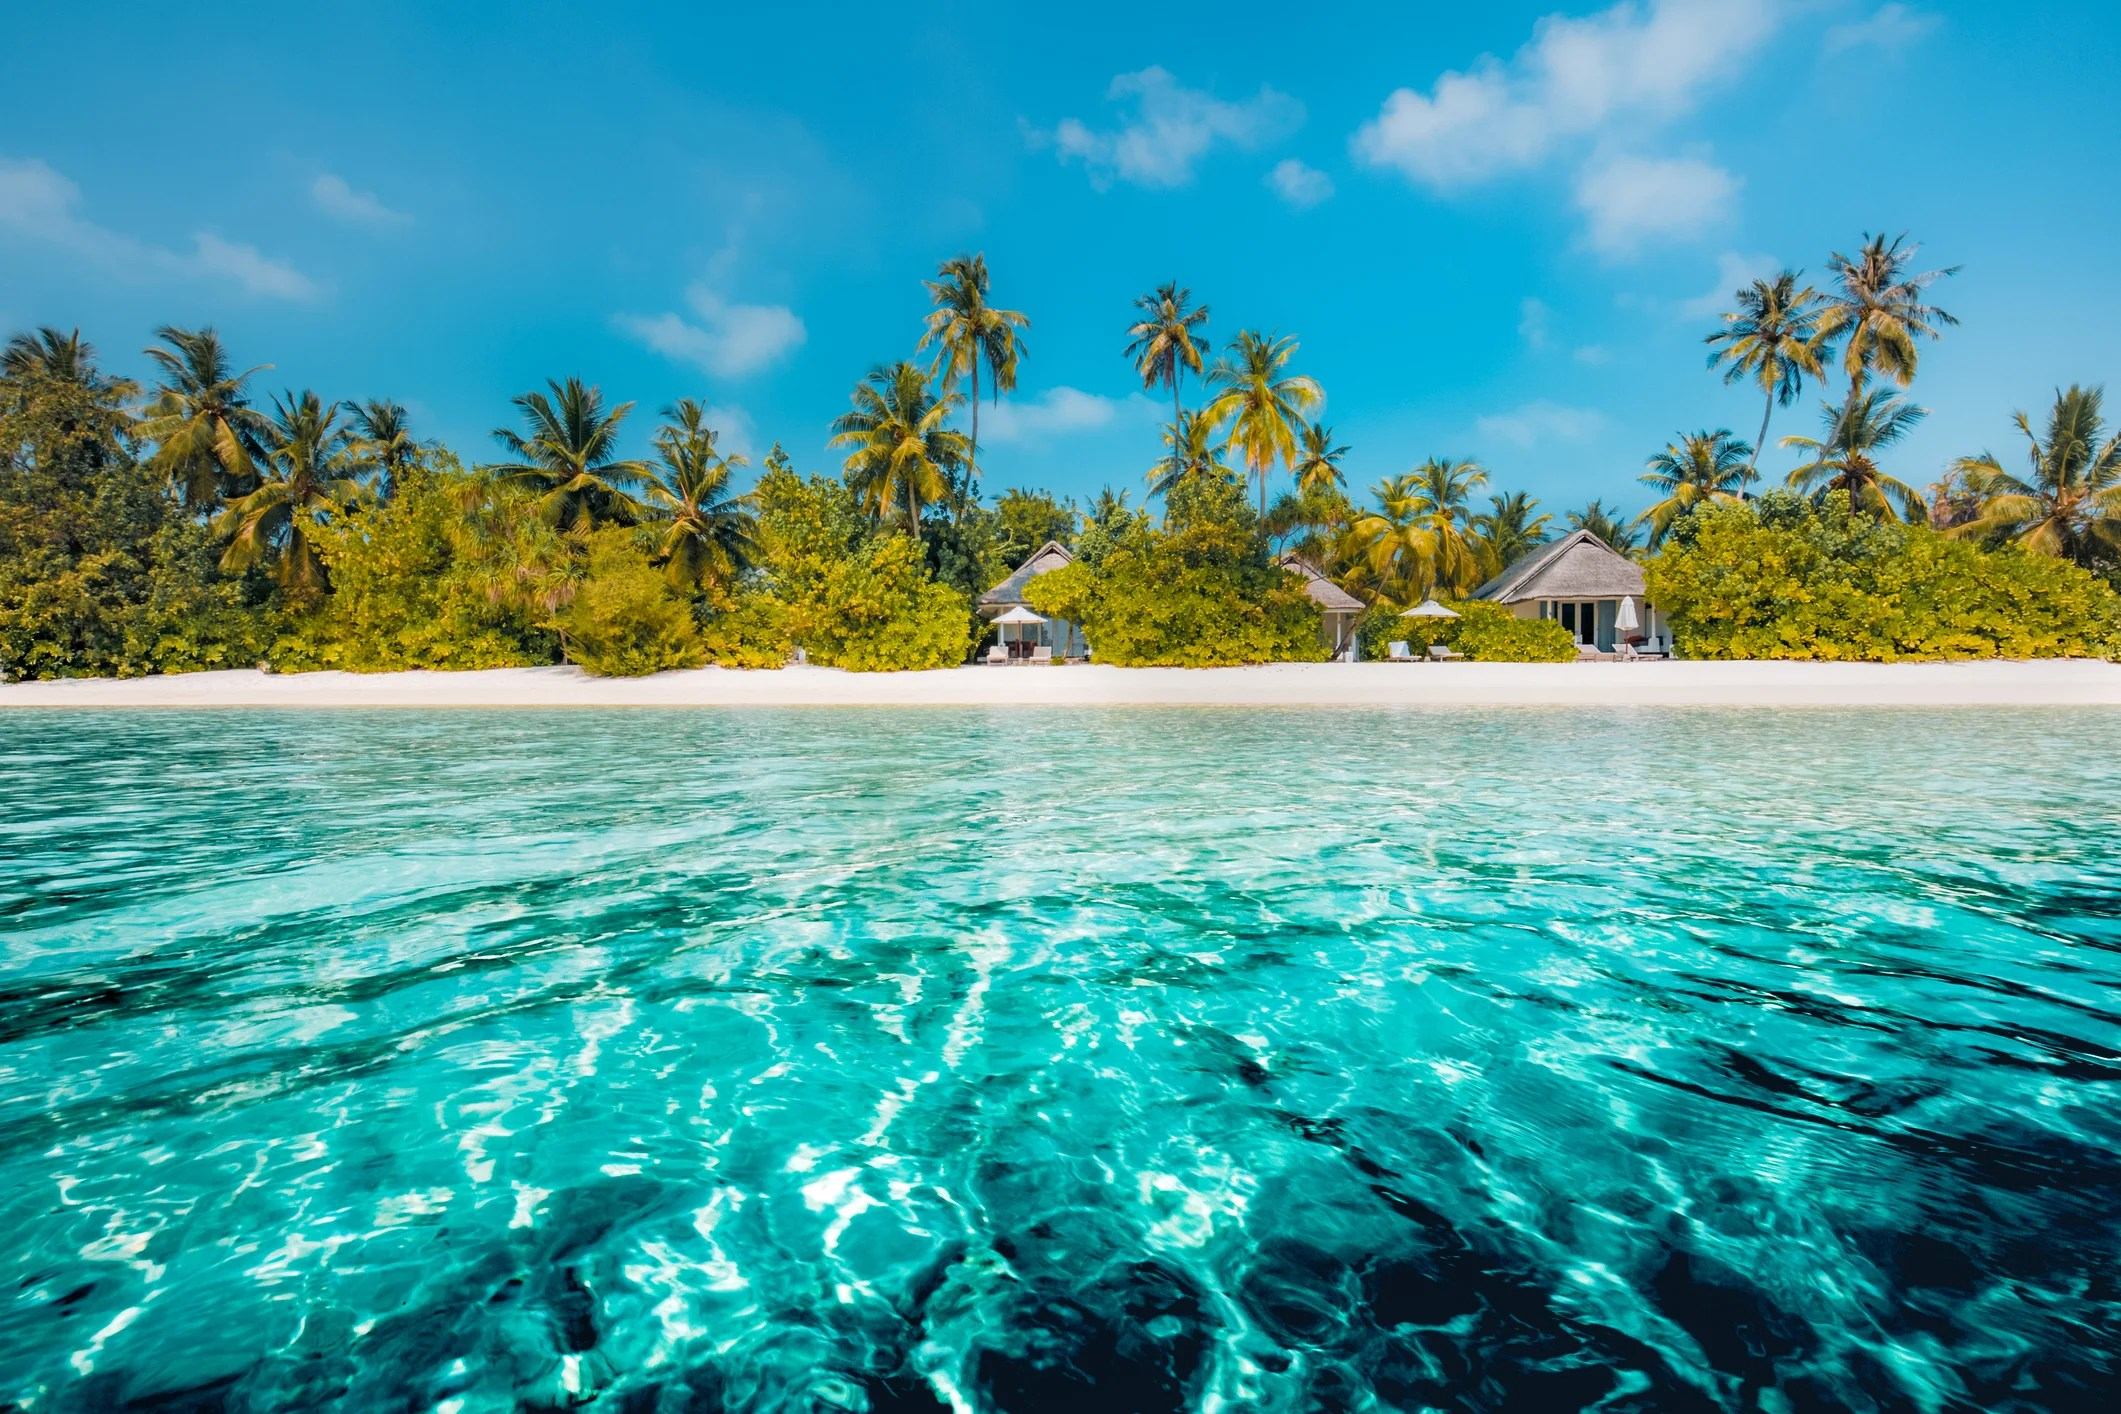 TPG Points Lab: Finding award availability on flights to Tahiti